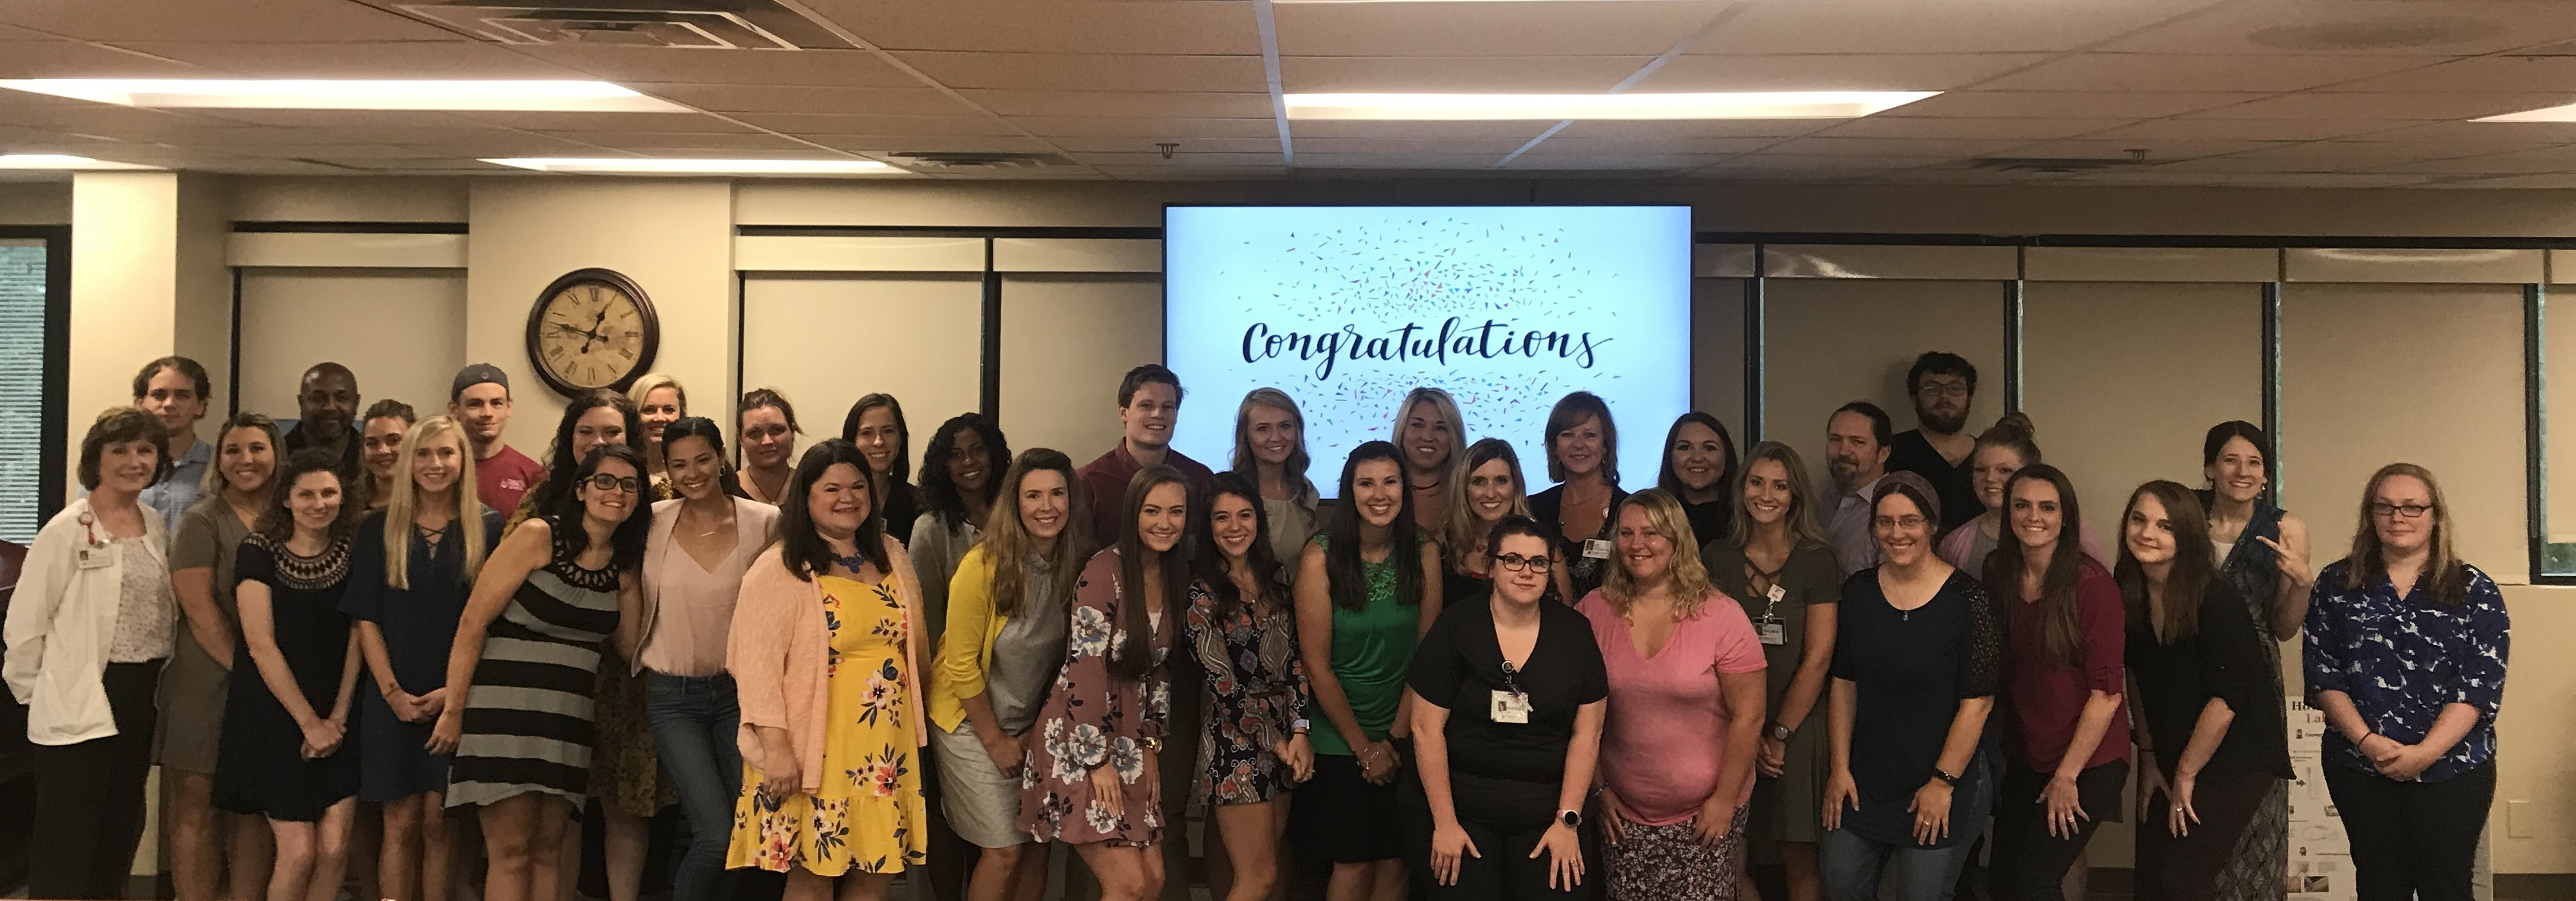 Graduation Day for Nurse Residents